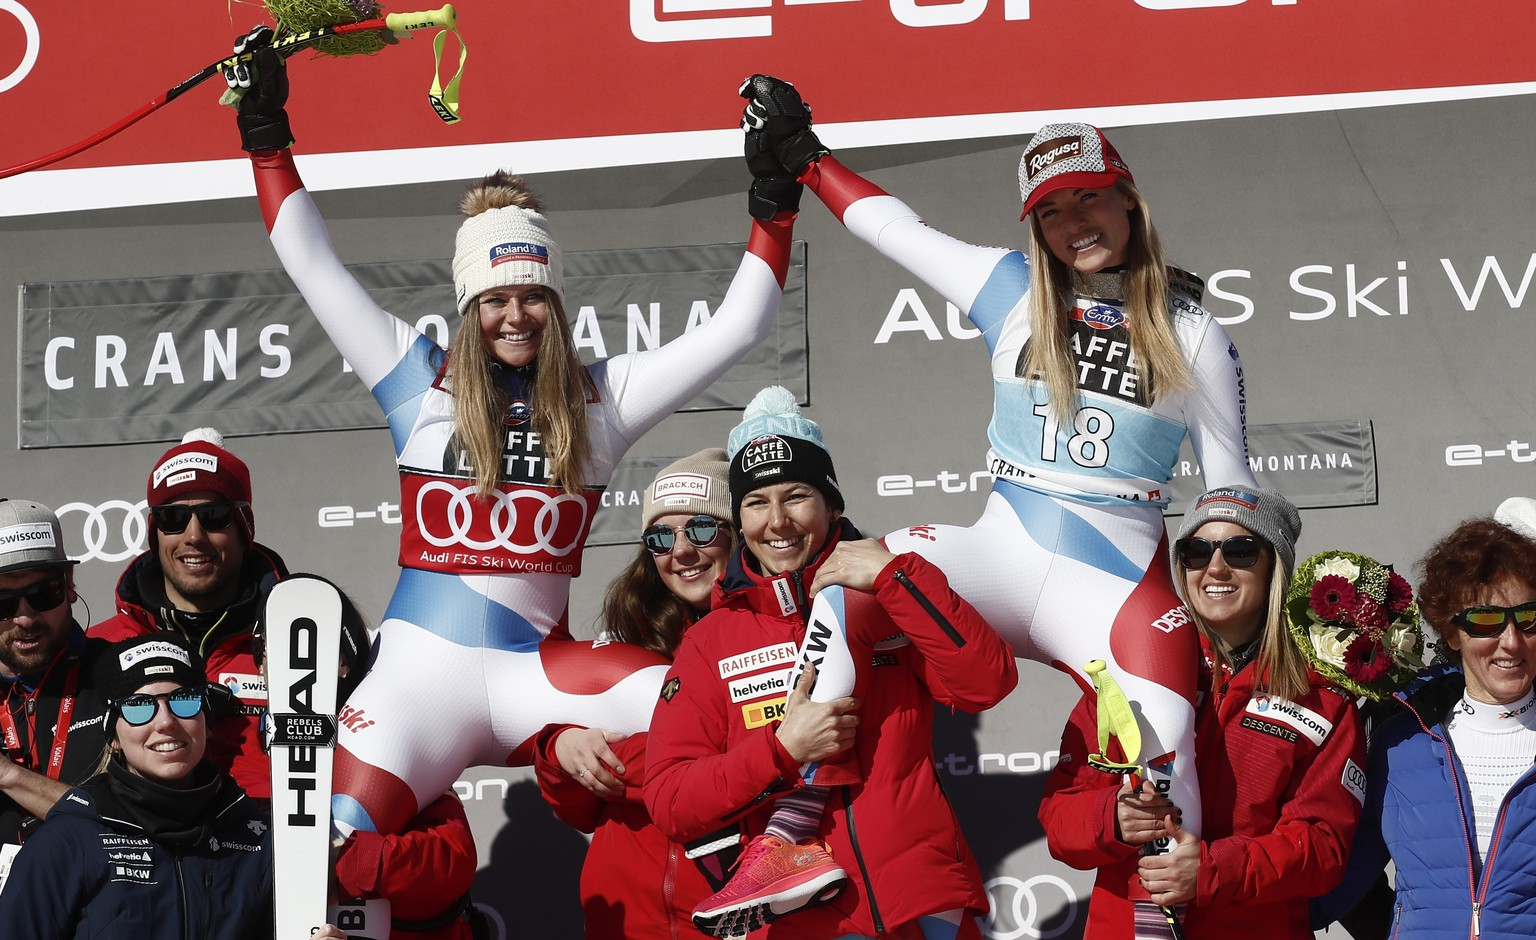 Switzerland's Lara Gut-Behrami, winner of an alpine ski, women's World Cup downhill, top right, celebrates with second-placed Switzerland's Corinne Suter, and the Swiss team, in Crans Montana, Switzerland, Friday, Feb. 21, 2020. (AP Photo/Gabriele Facciotti)